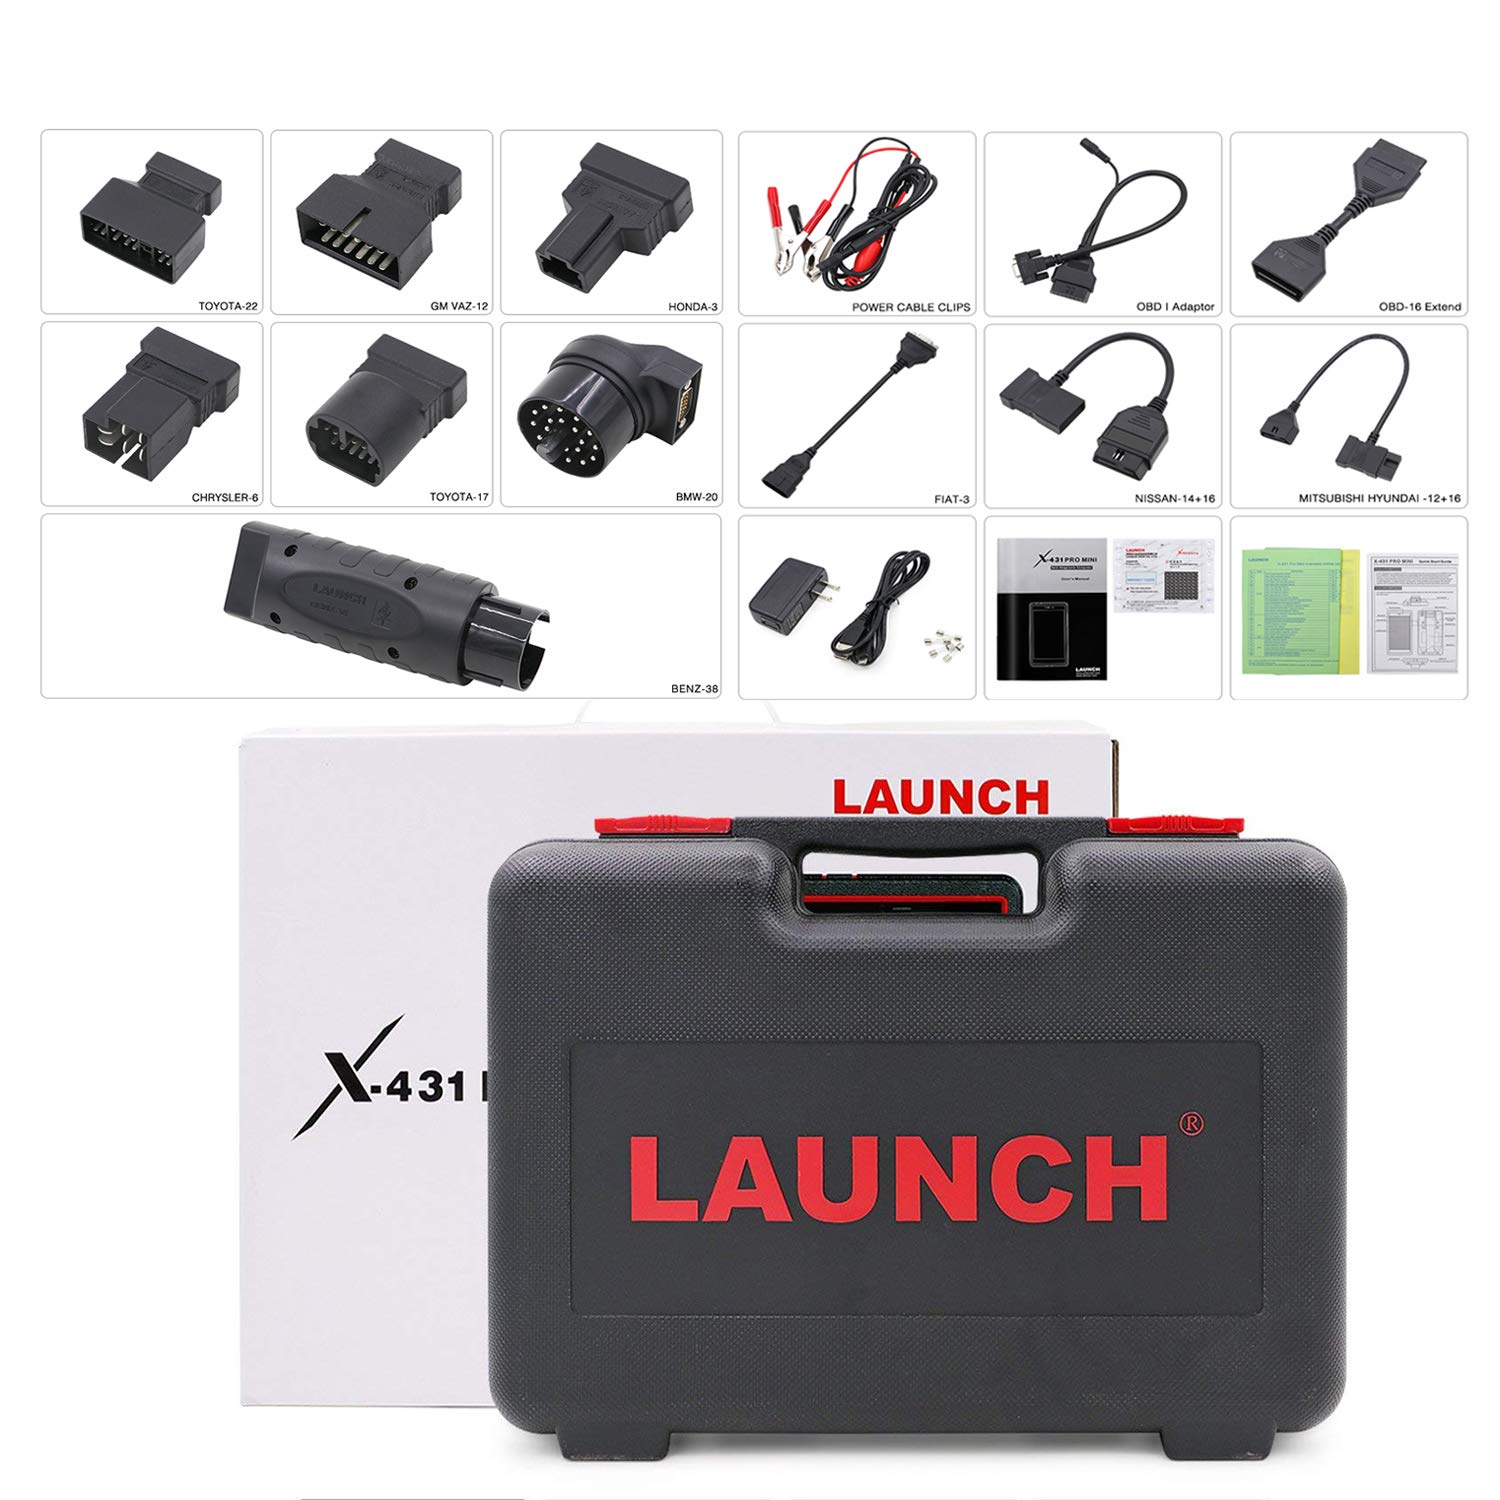 LAUNCH X431 PRO Mini Bi-Directional Diagnostic Tool Full Systems OBD2 Scanner IMMO Reset Key Progm ECU Coding (Upgraded PROS Mini)-Free Update 2 Years by LAUNCH (Image #6)